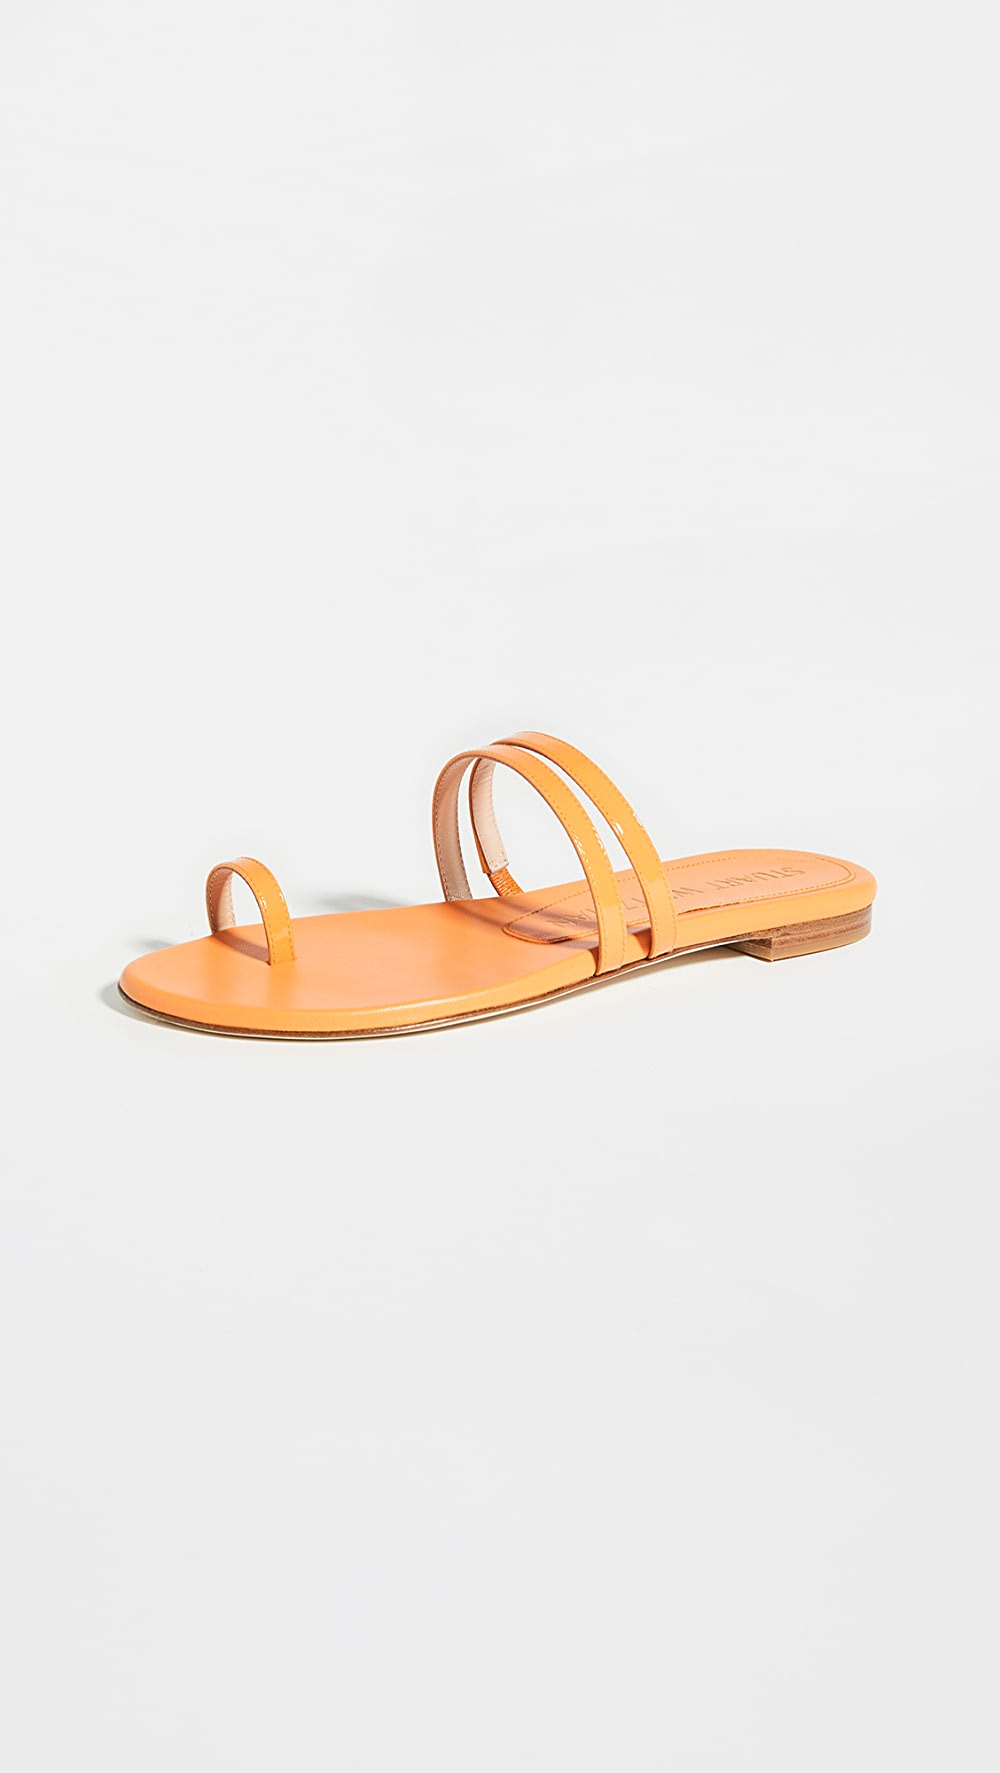 Imported From Abroad Stuart Weitzman - Leonita Slide Sandals To Prevent And Cure Diseases